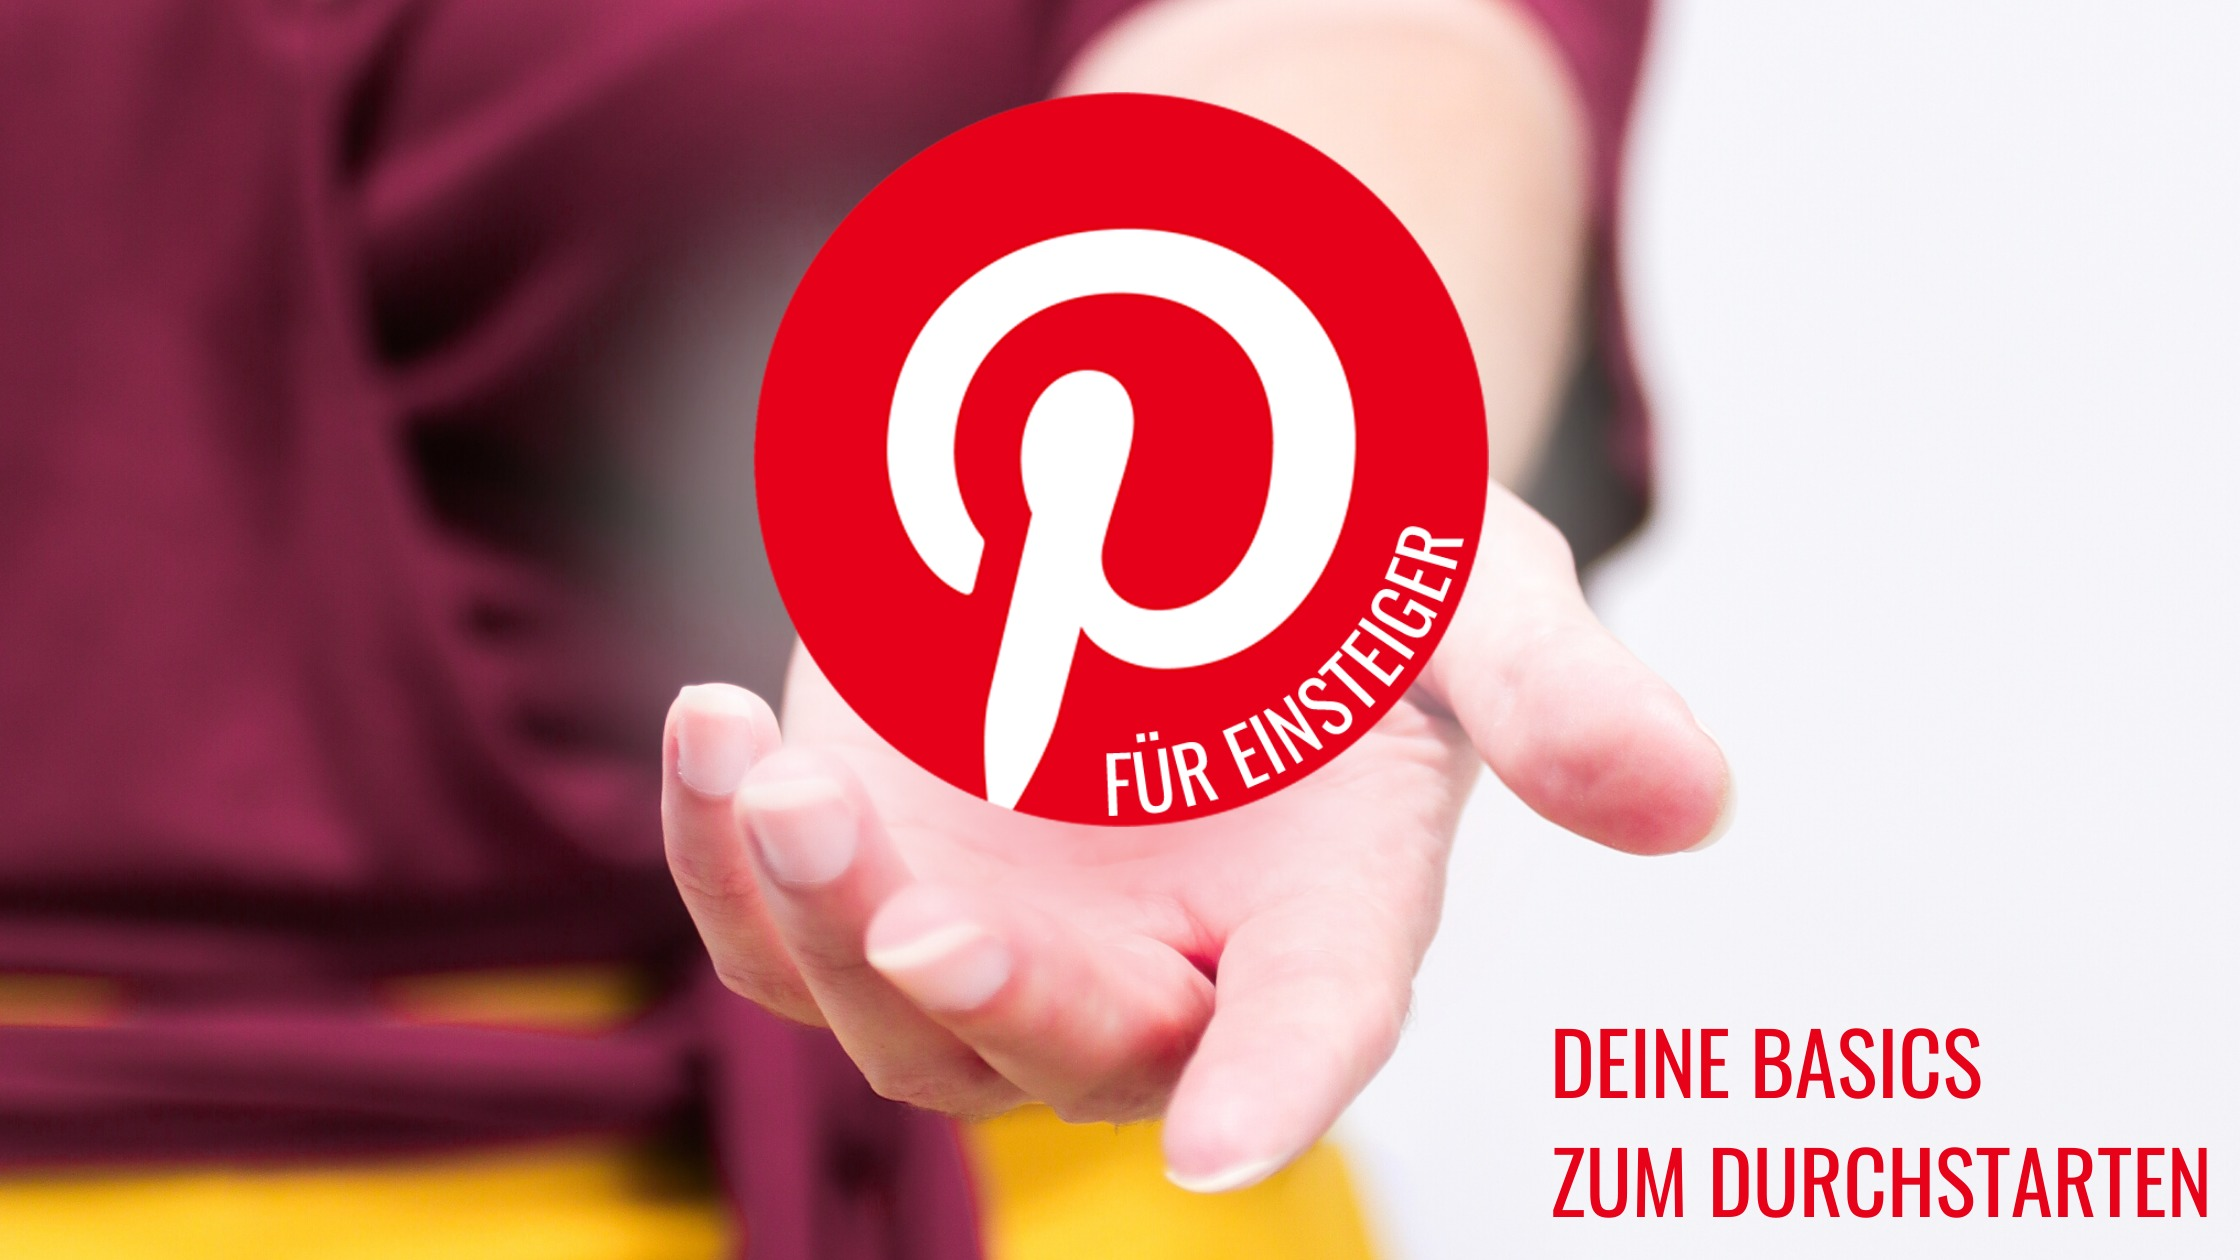 Happy Pinning! | Blogger-Coaching.de - Tipps & Kurse für Blogger